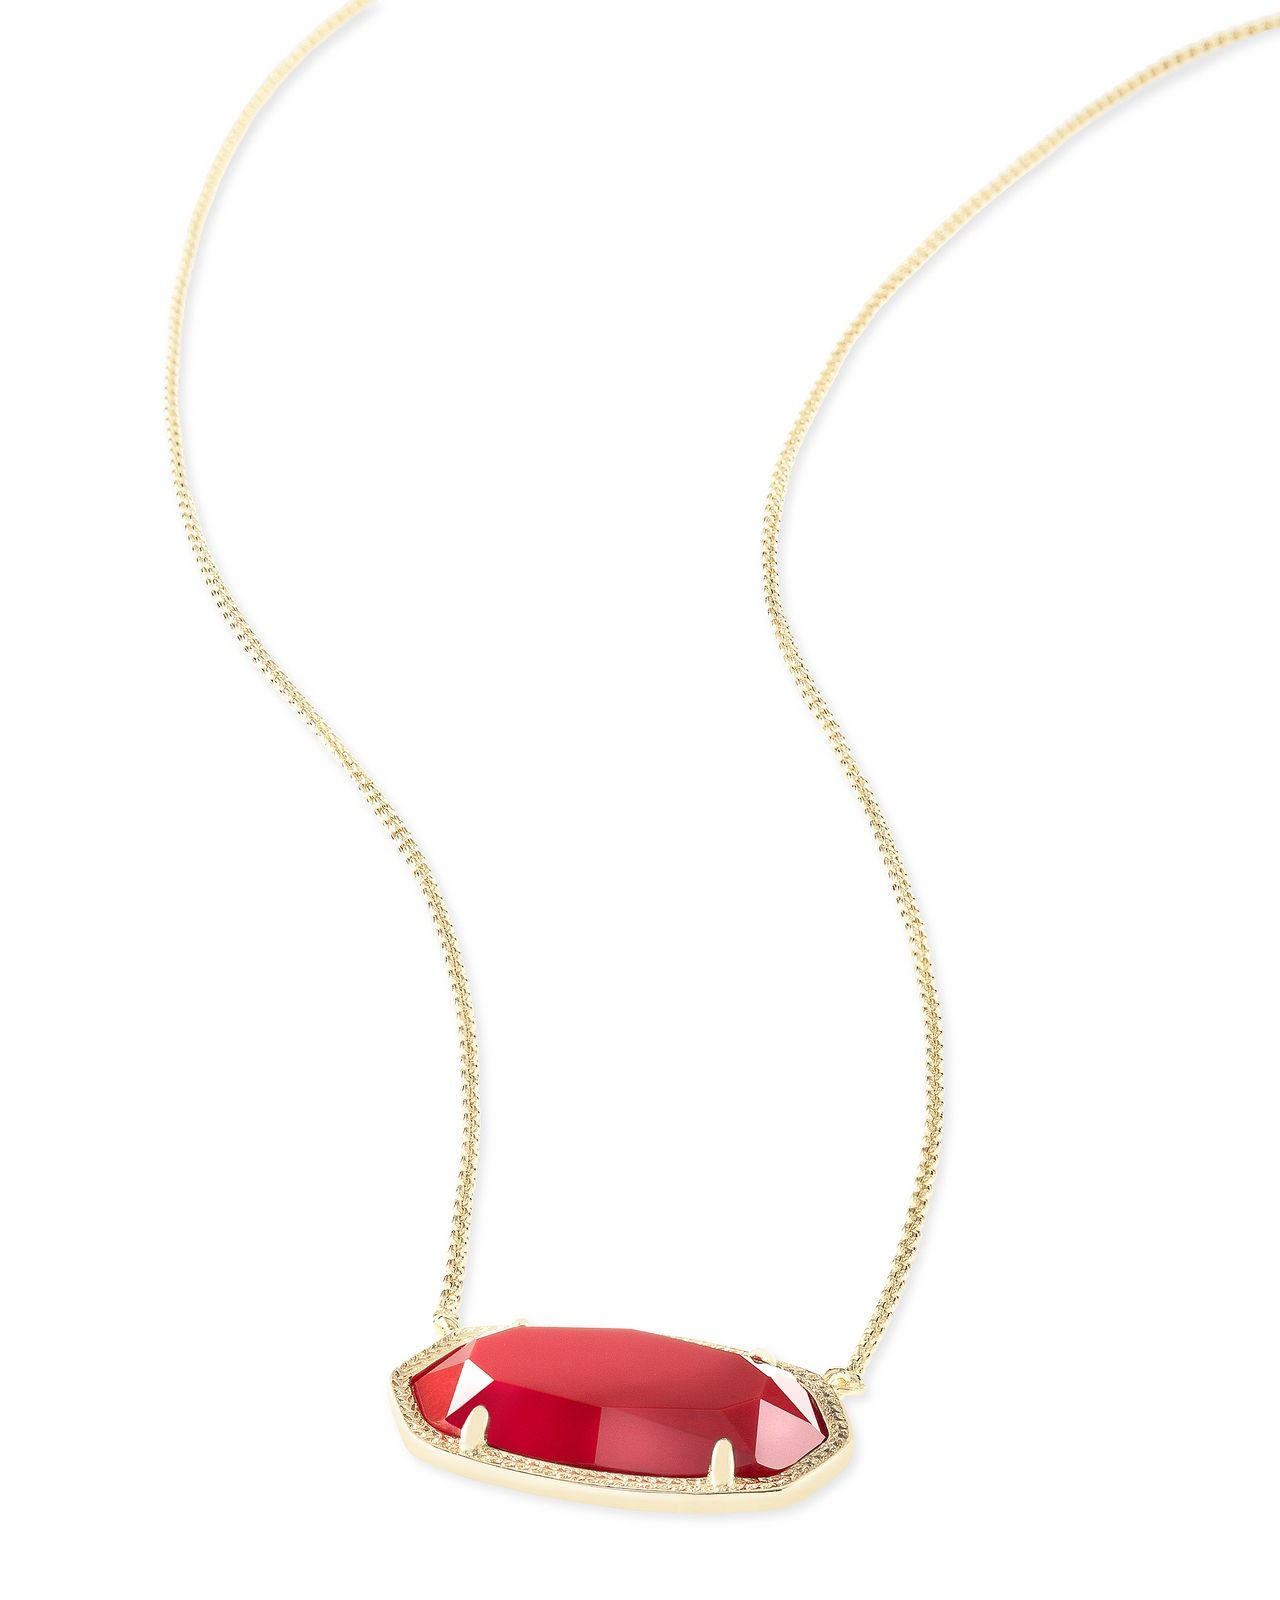 Kendra scott elisa oval pendant necklace in red and gold plated